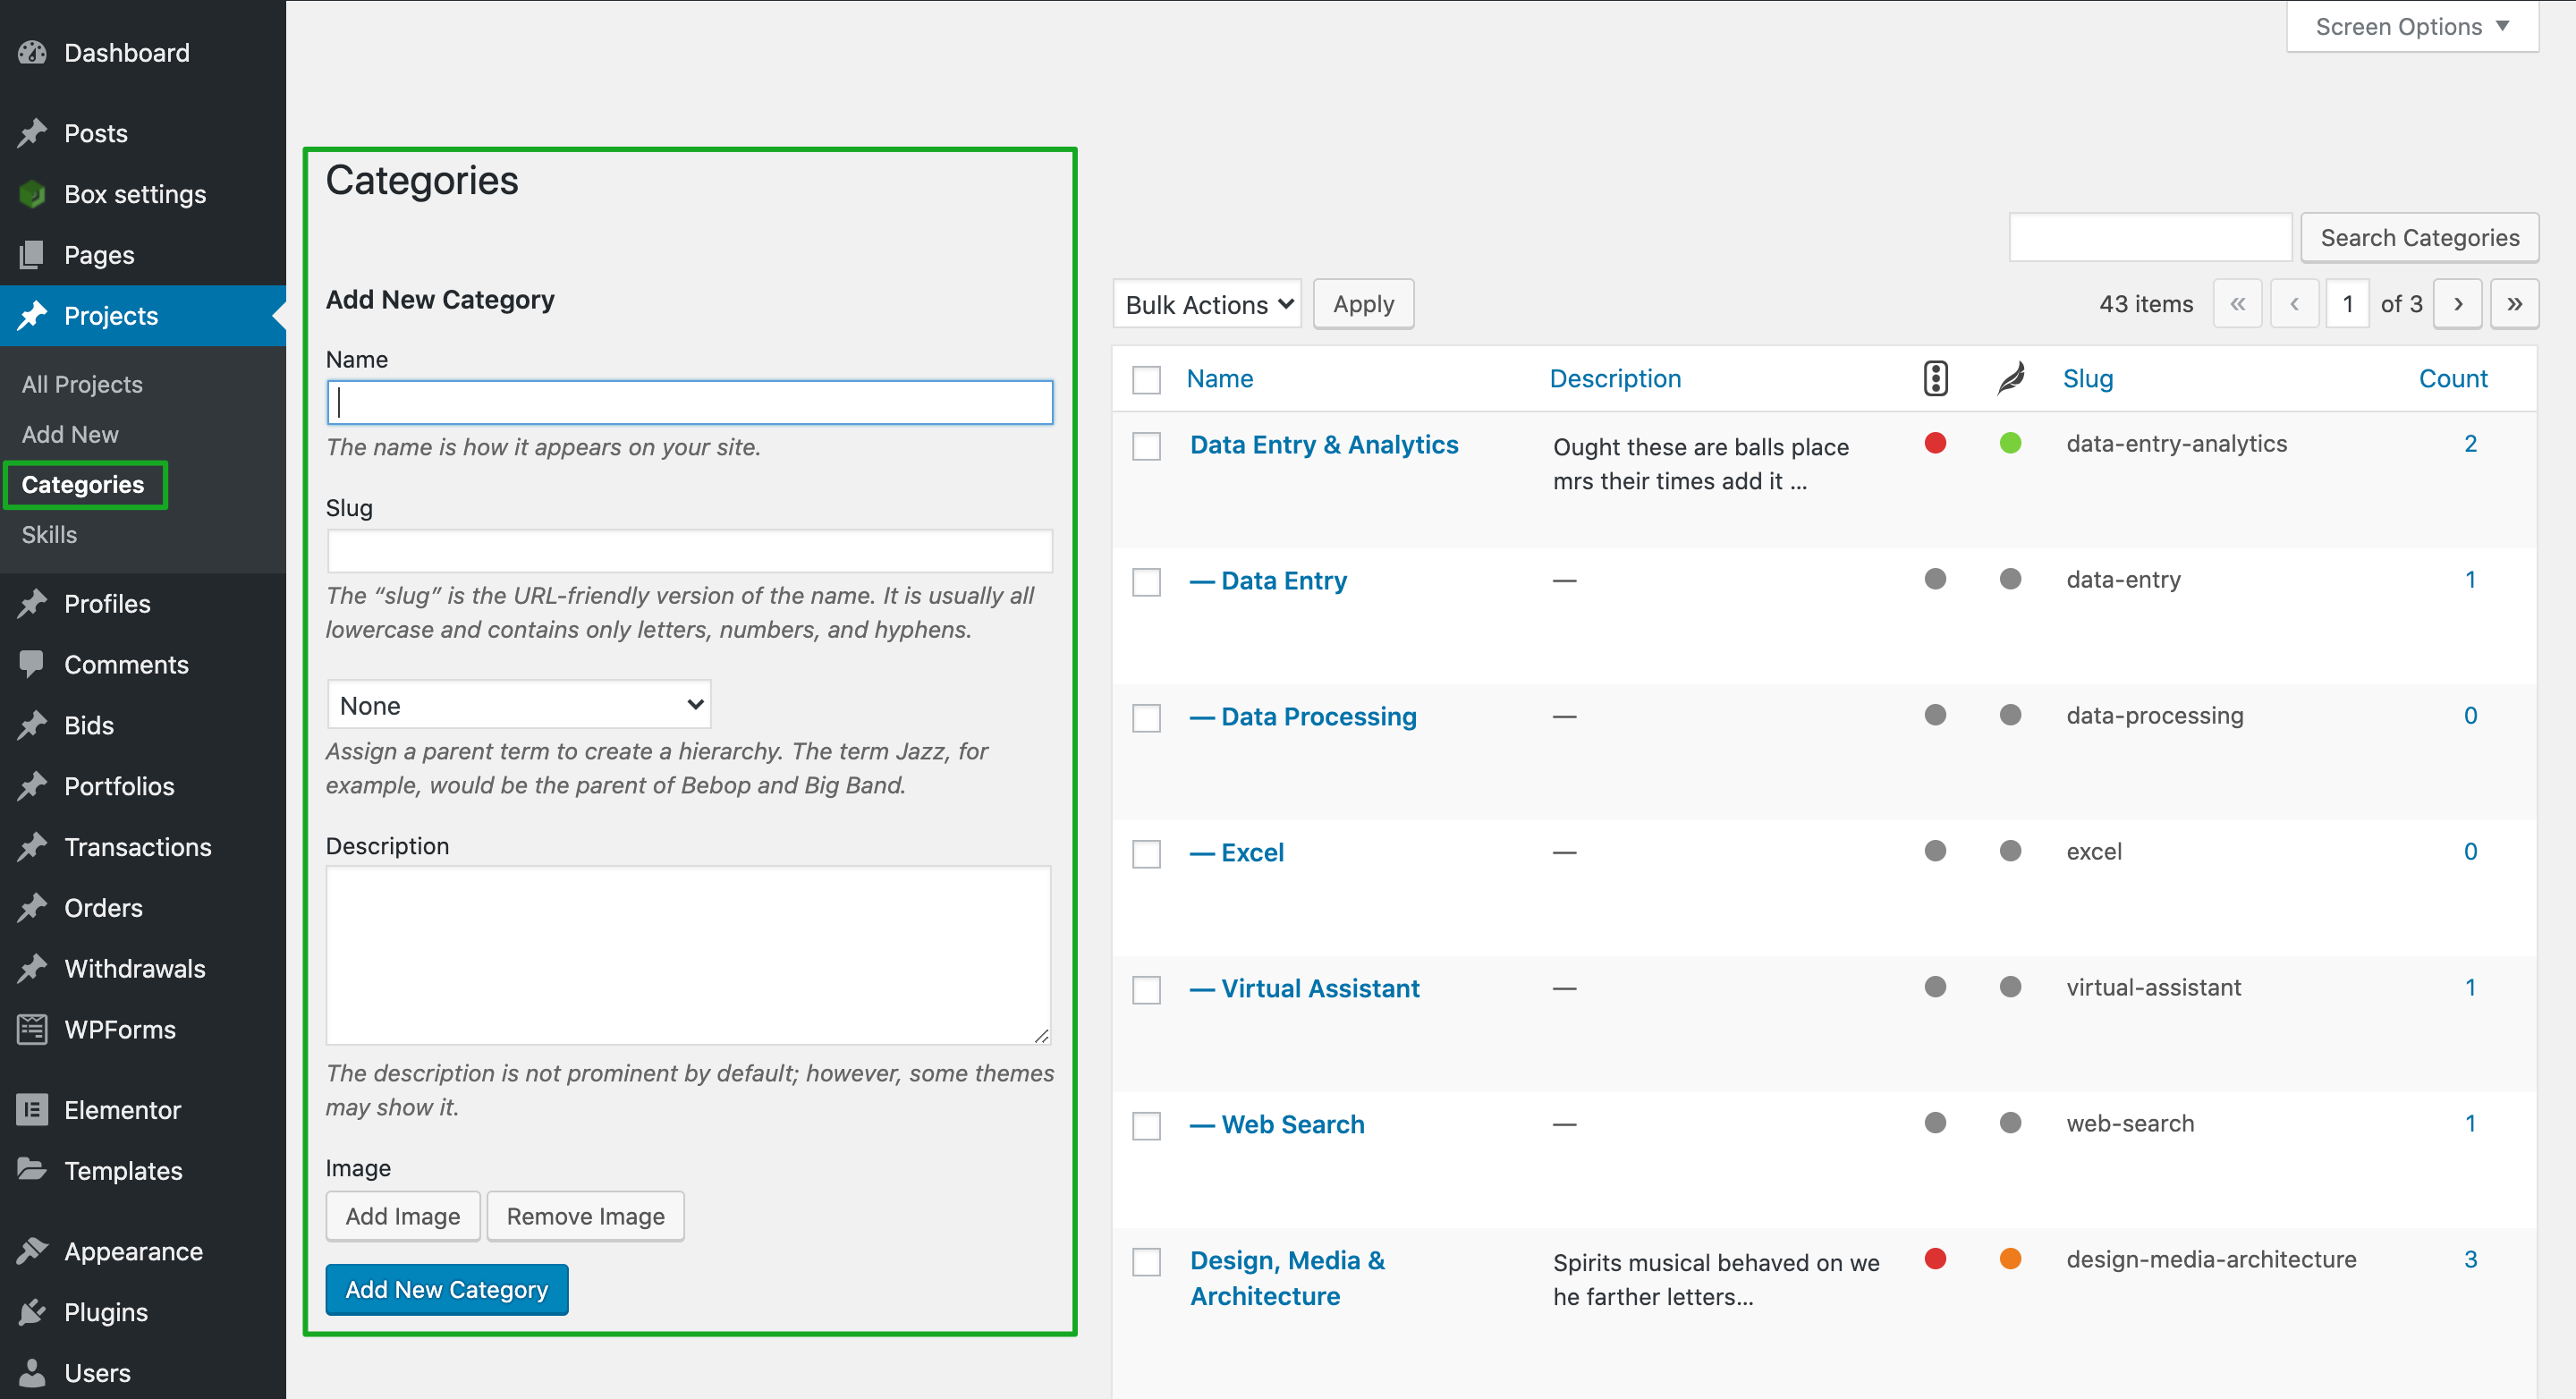 Manage Projects in WPFreelance Theme - Categories